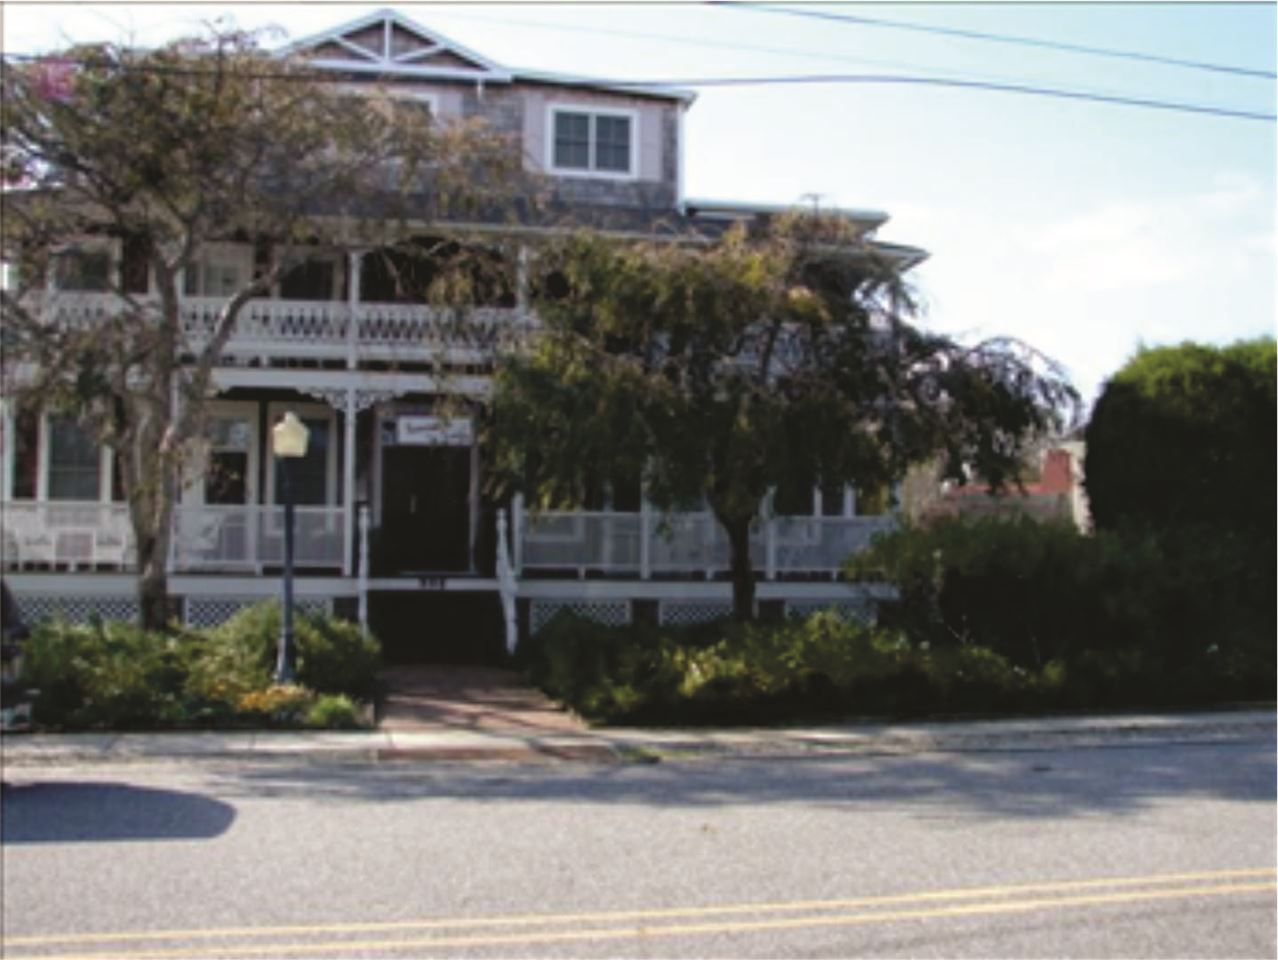 202 Ocean, Cape May Point, NJ 08212